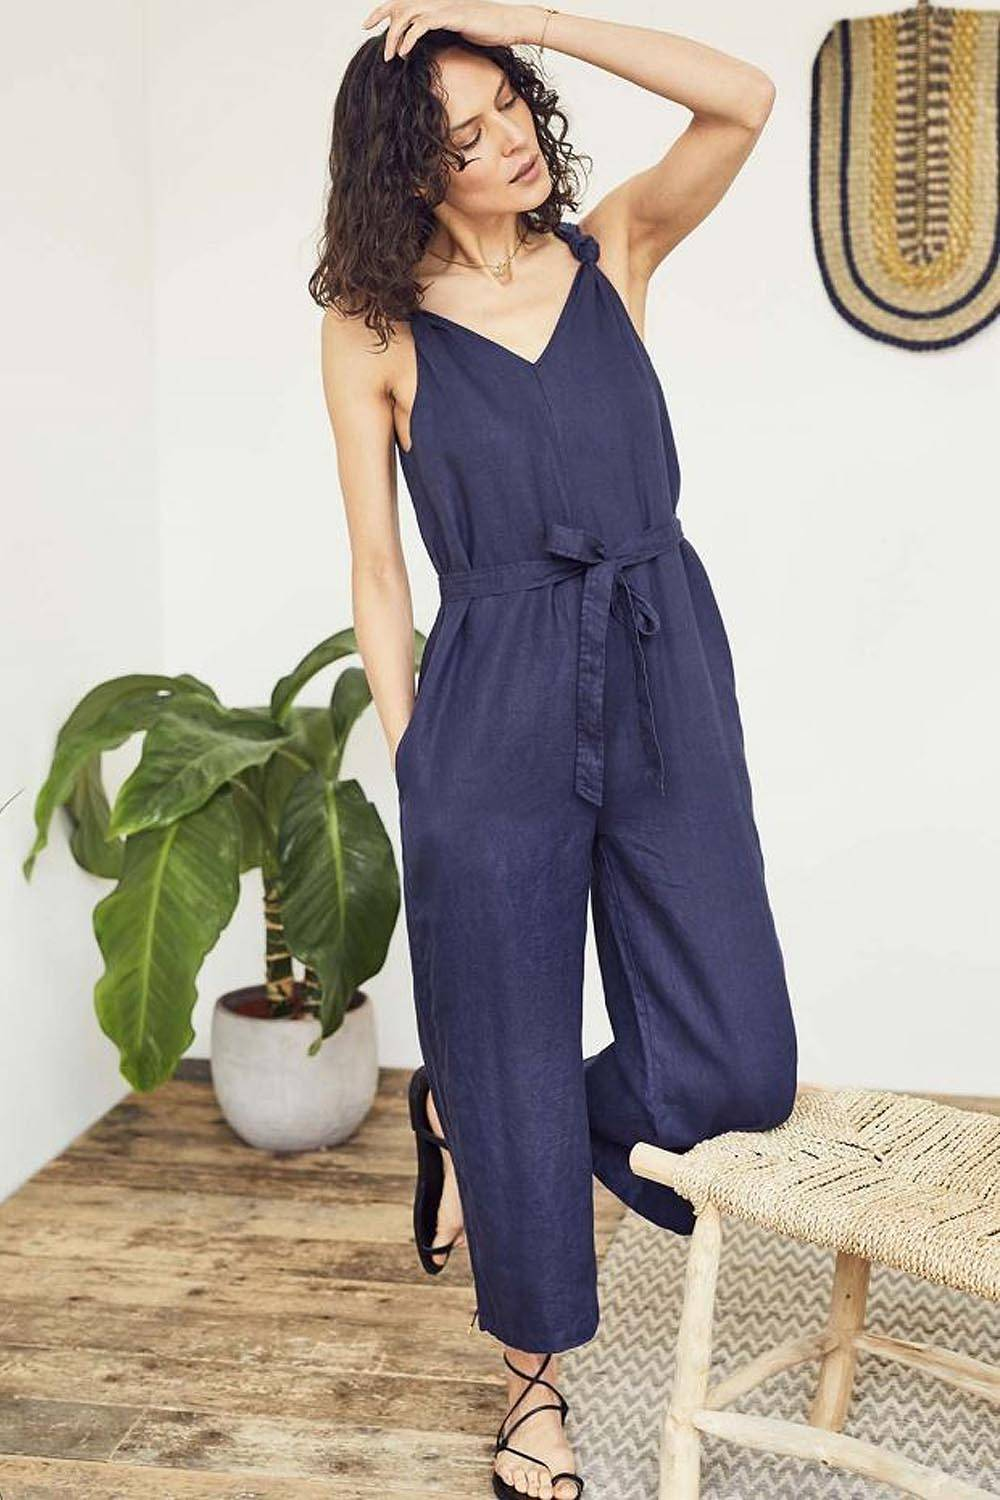 thought cheap ethically made jumpsuit